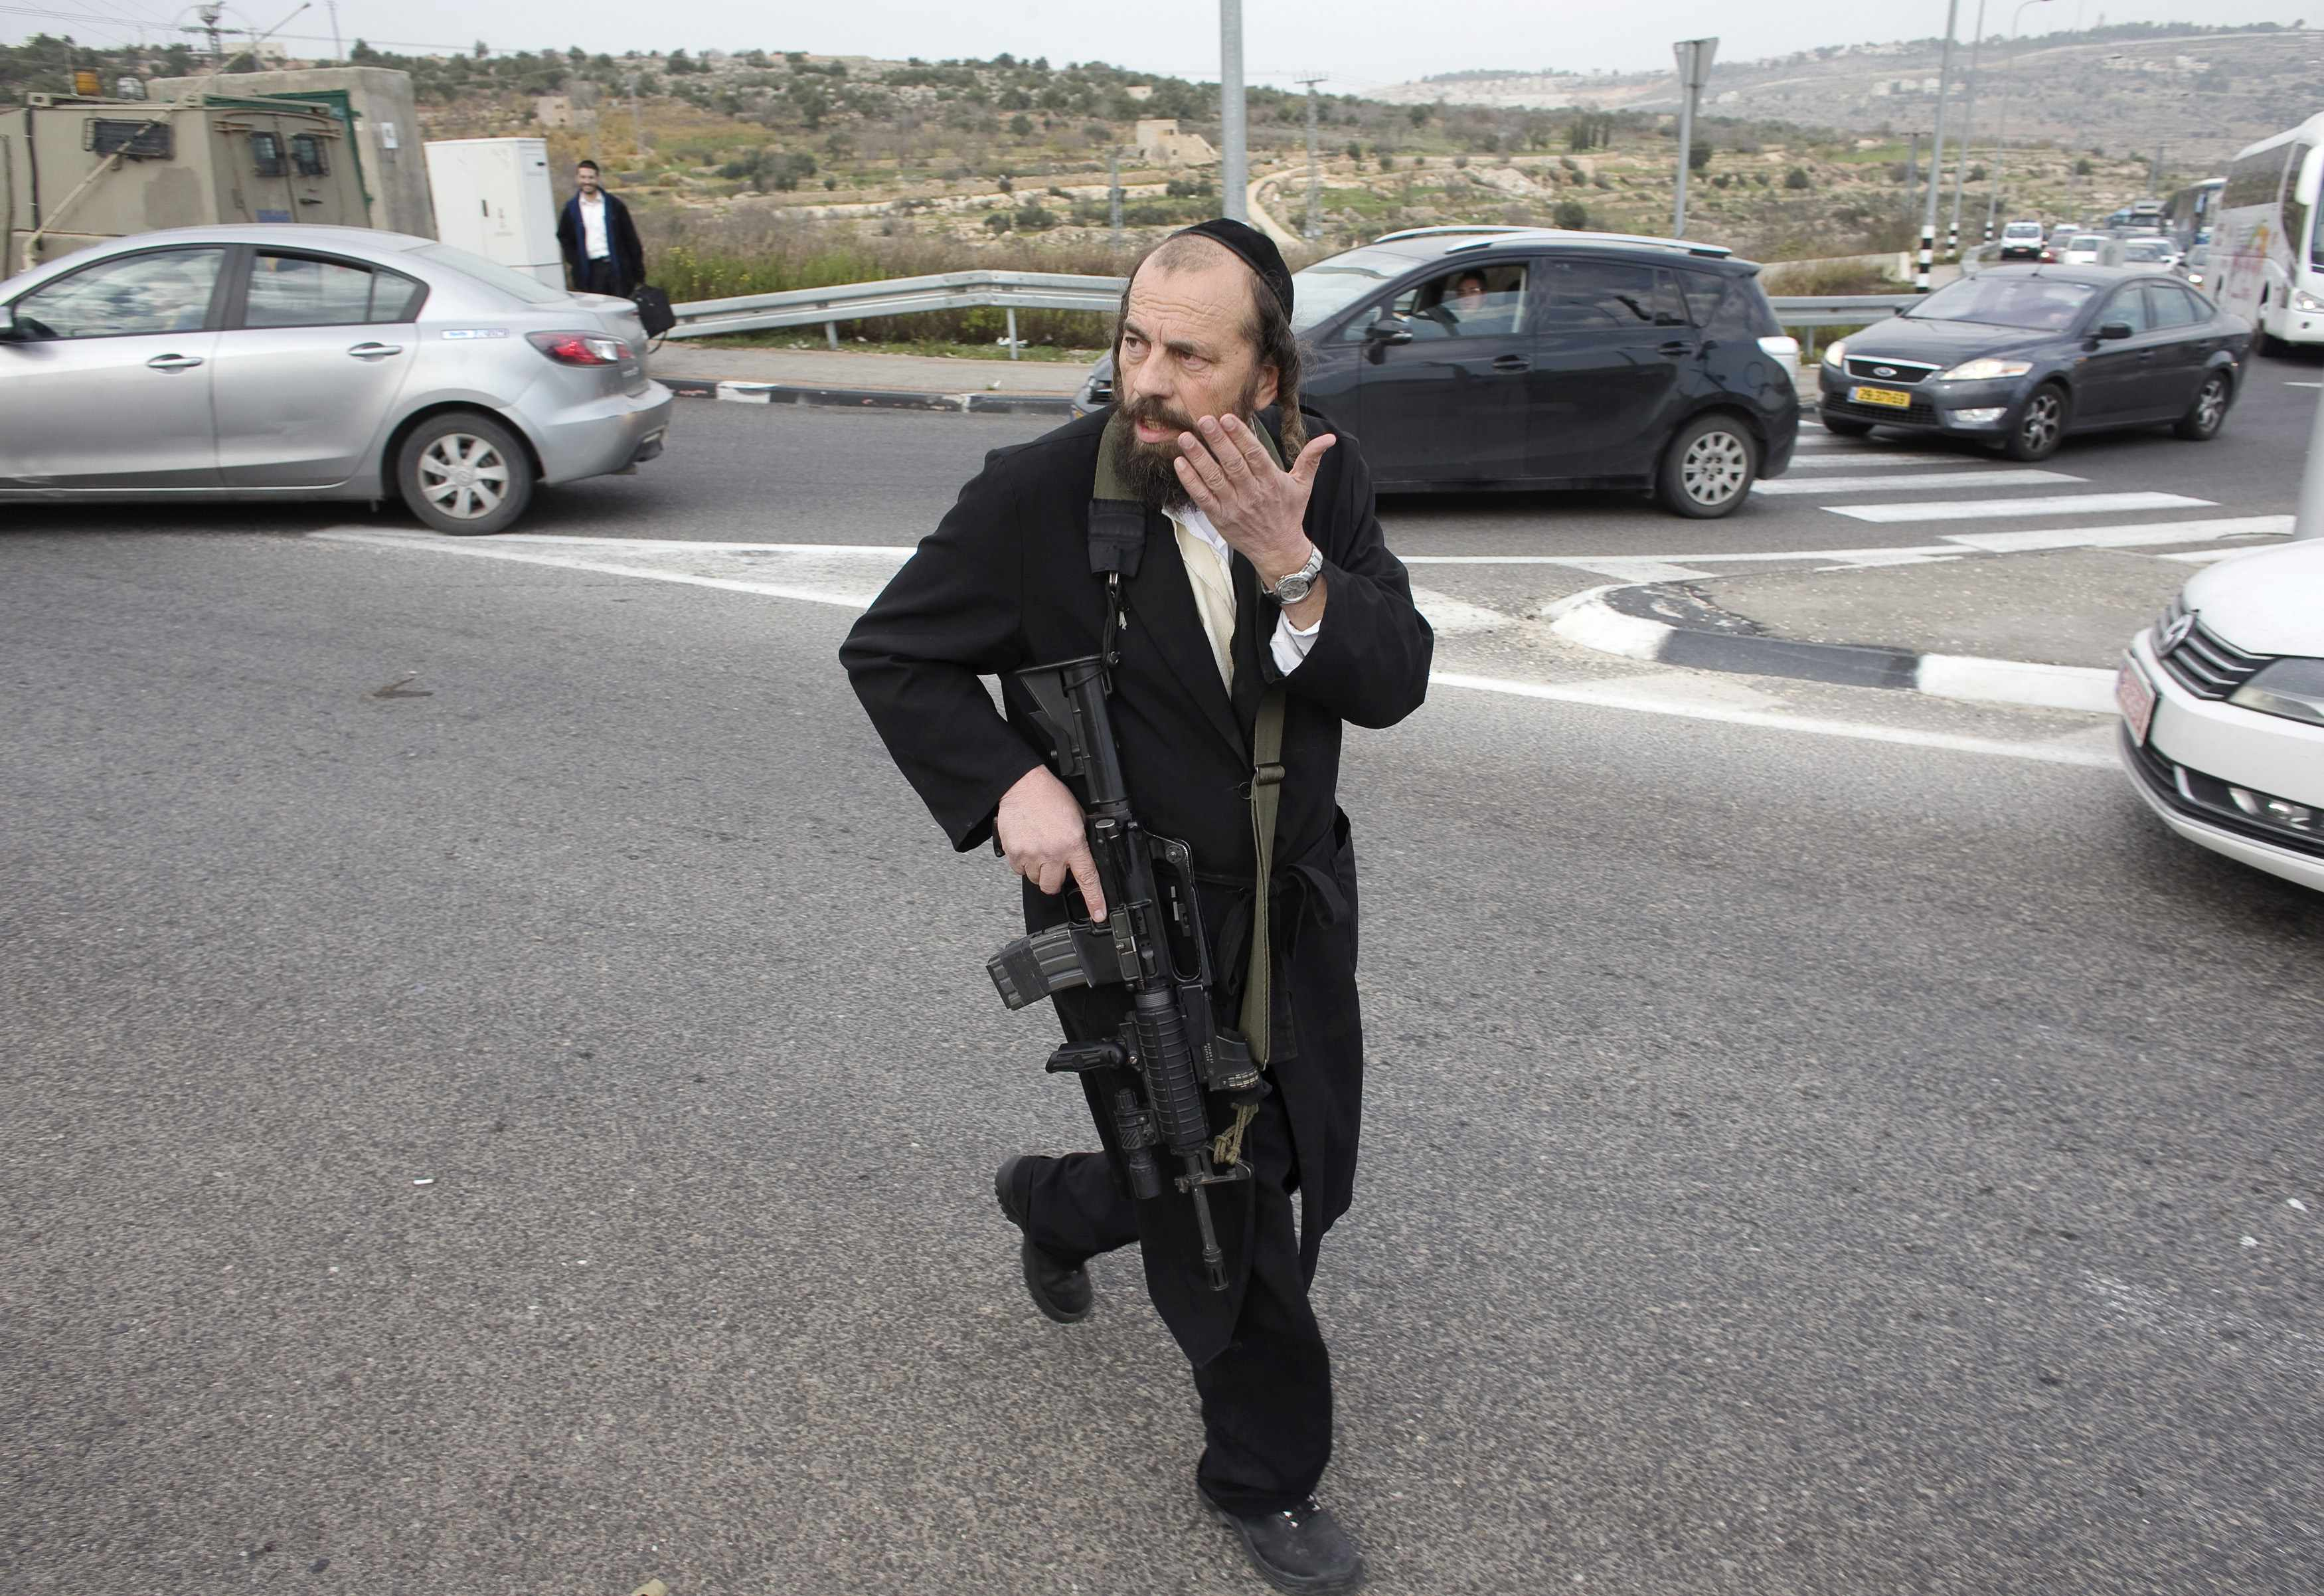 An Israeli Ultra-Orthodox Jewish man run at the scene where a Palestinian attacked civilians with a chemical substance near the West Bank Jewish settlement of Neve Daniel